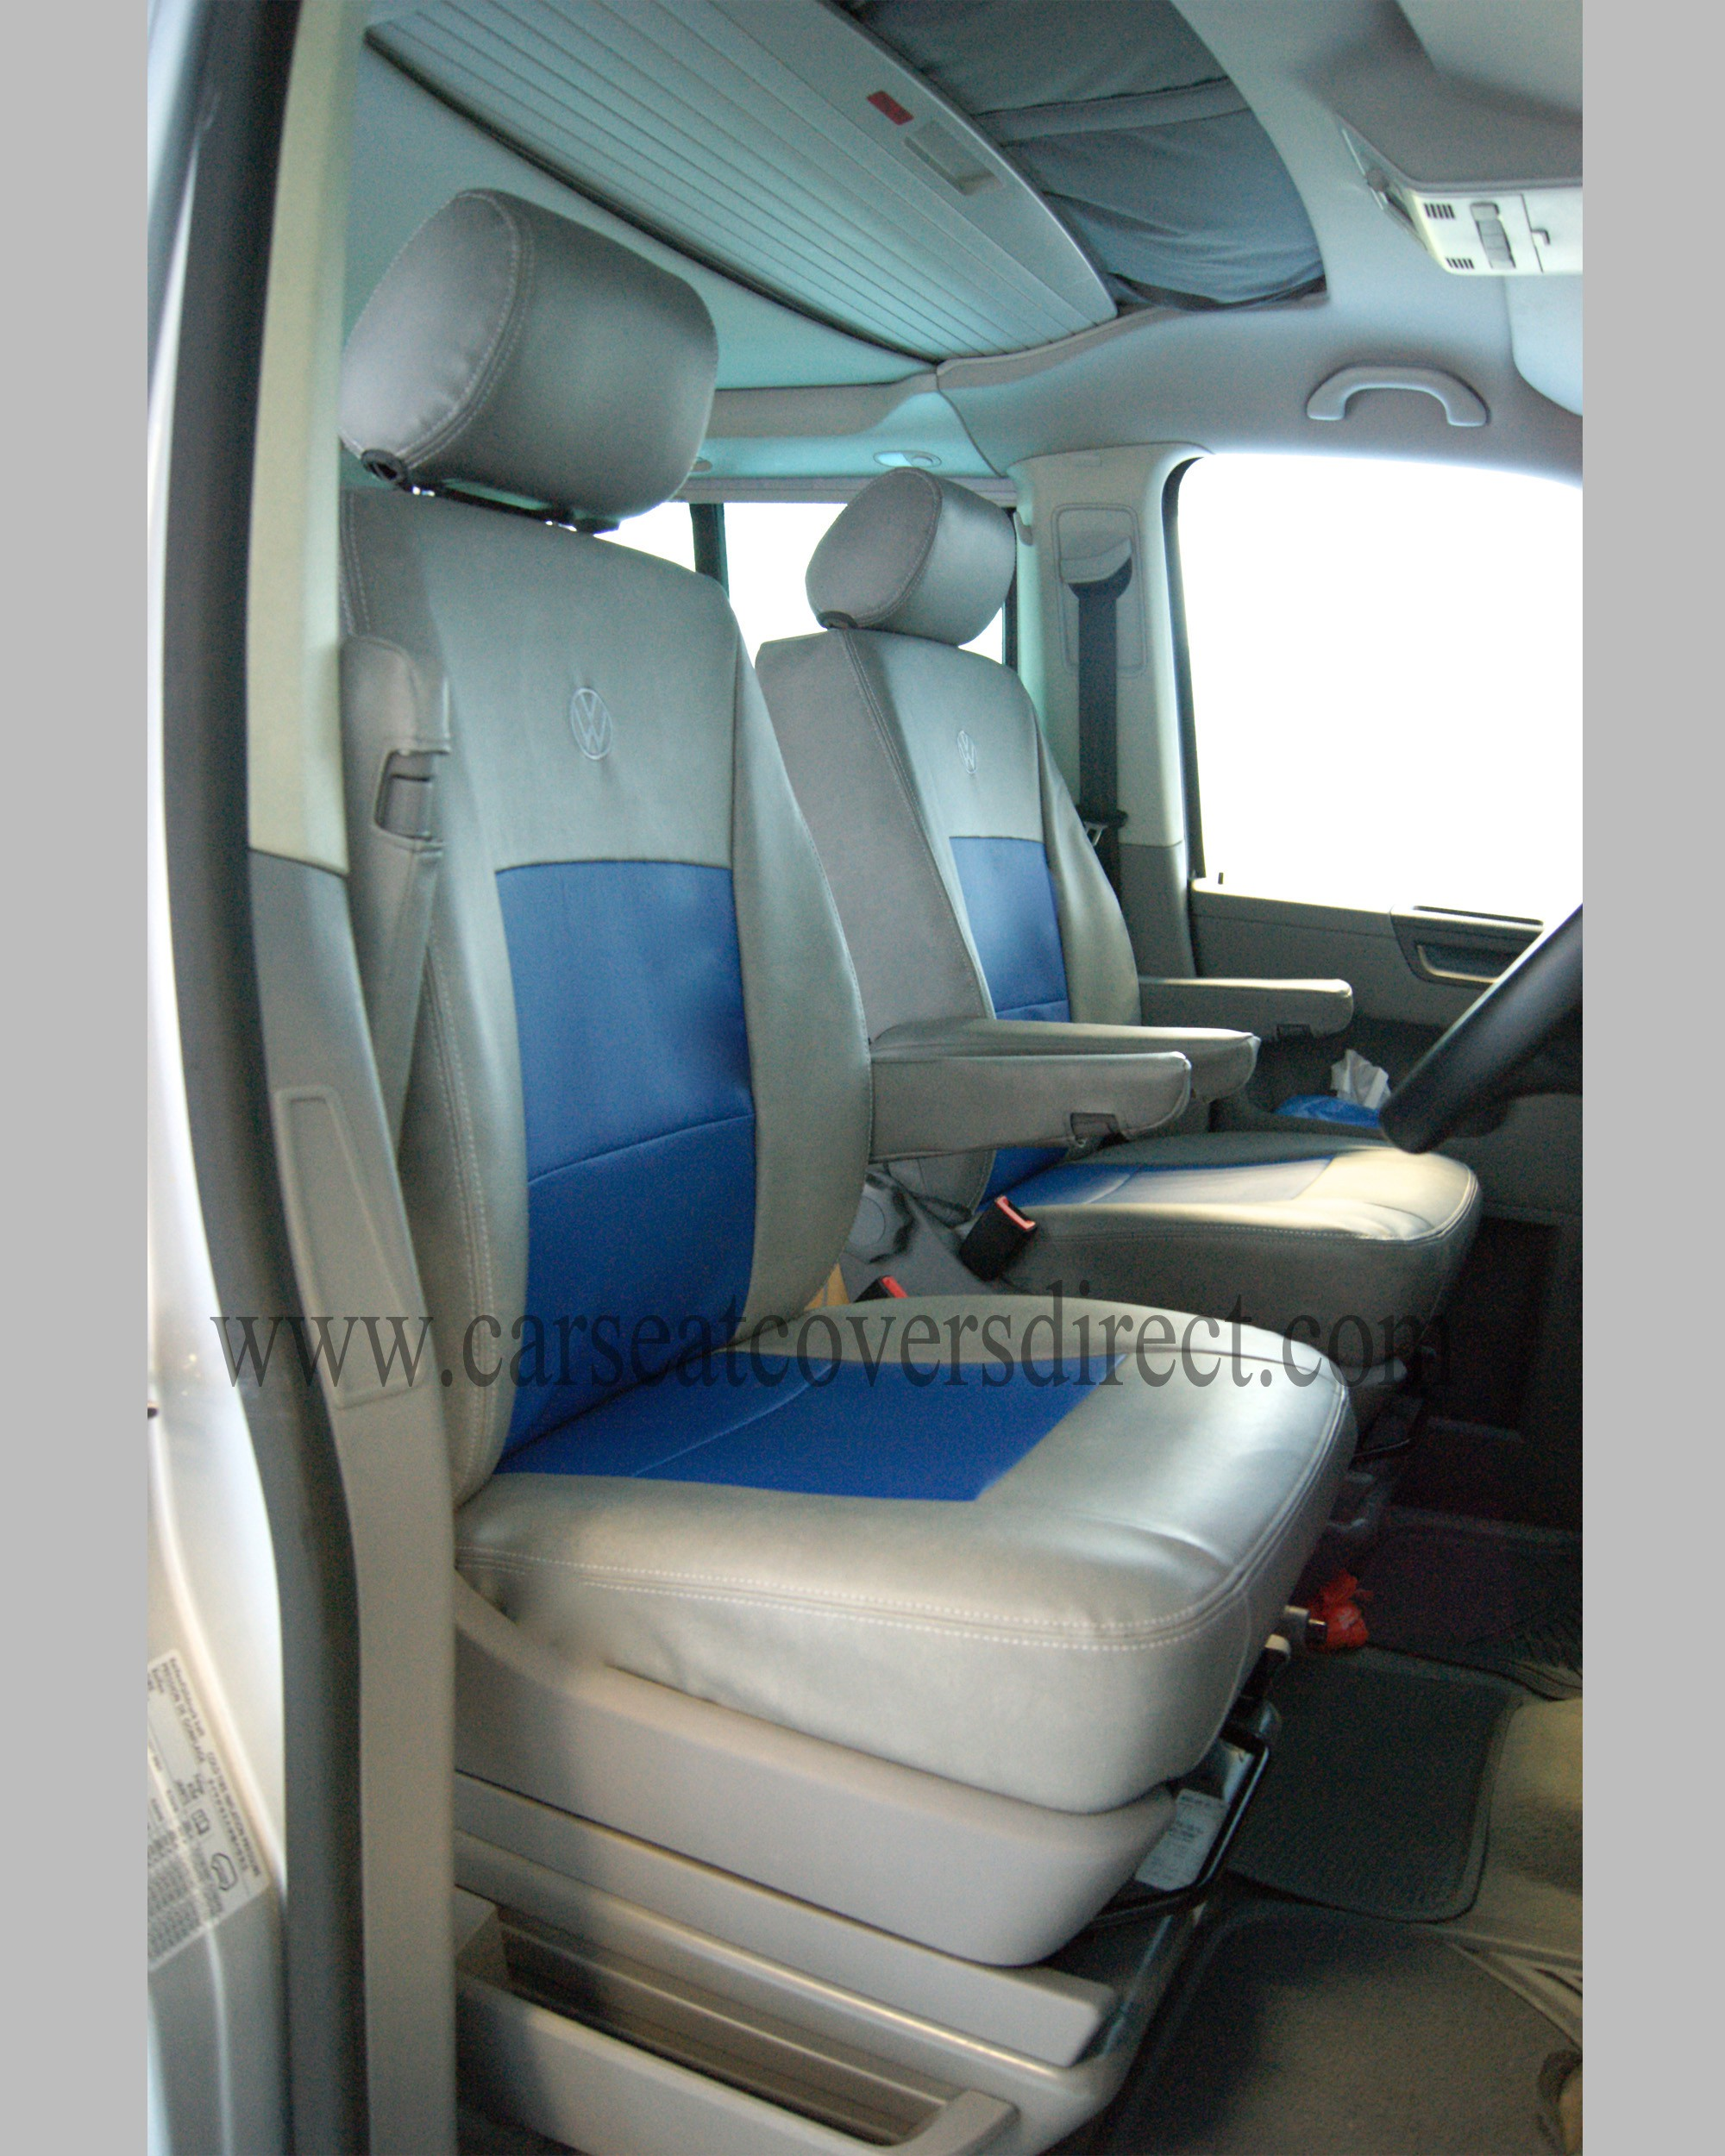 VOLKSWAGEN VW TRANSPORTER T5 CALIFORNIA  Seat Covers